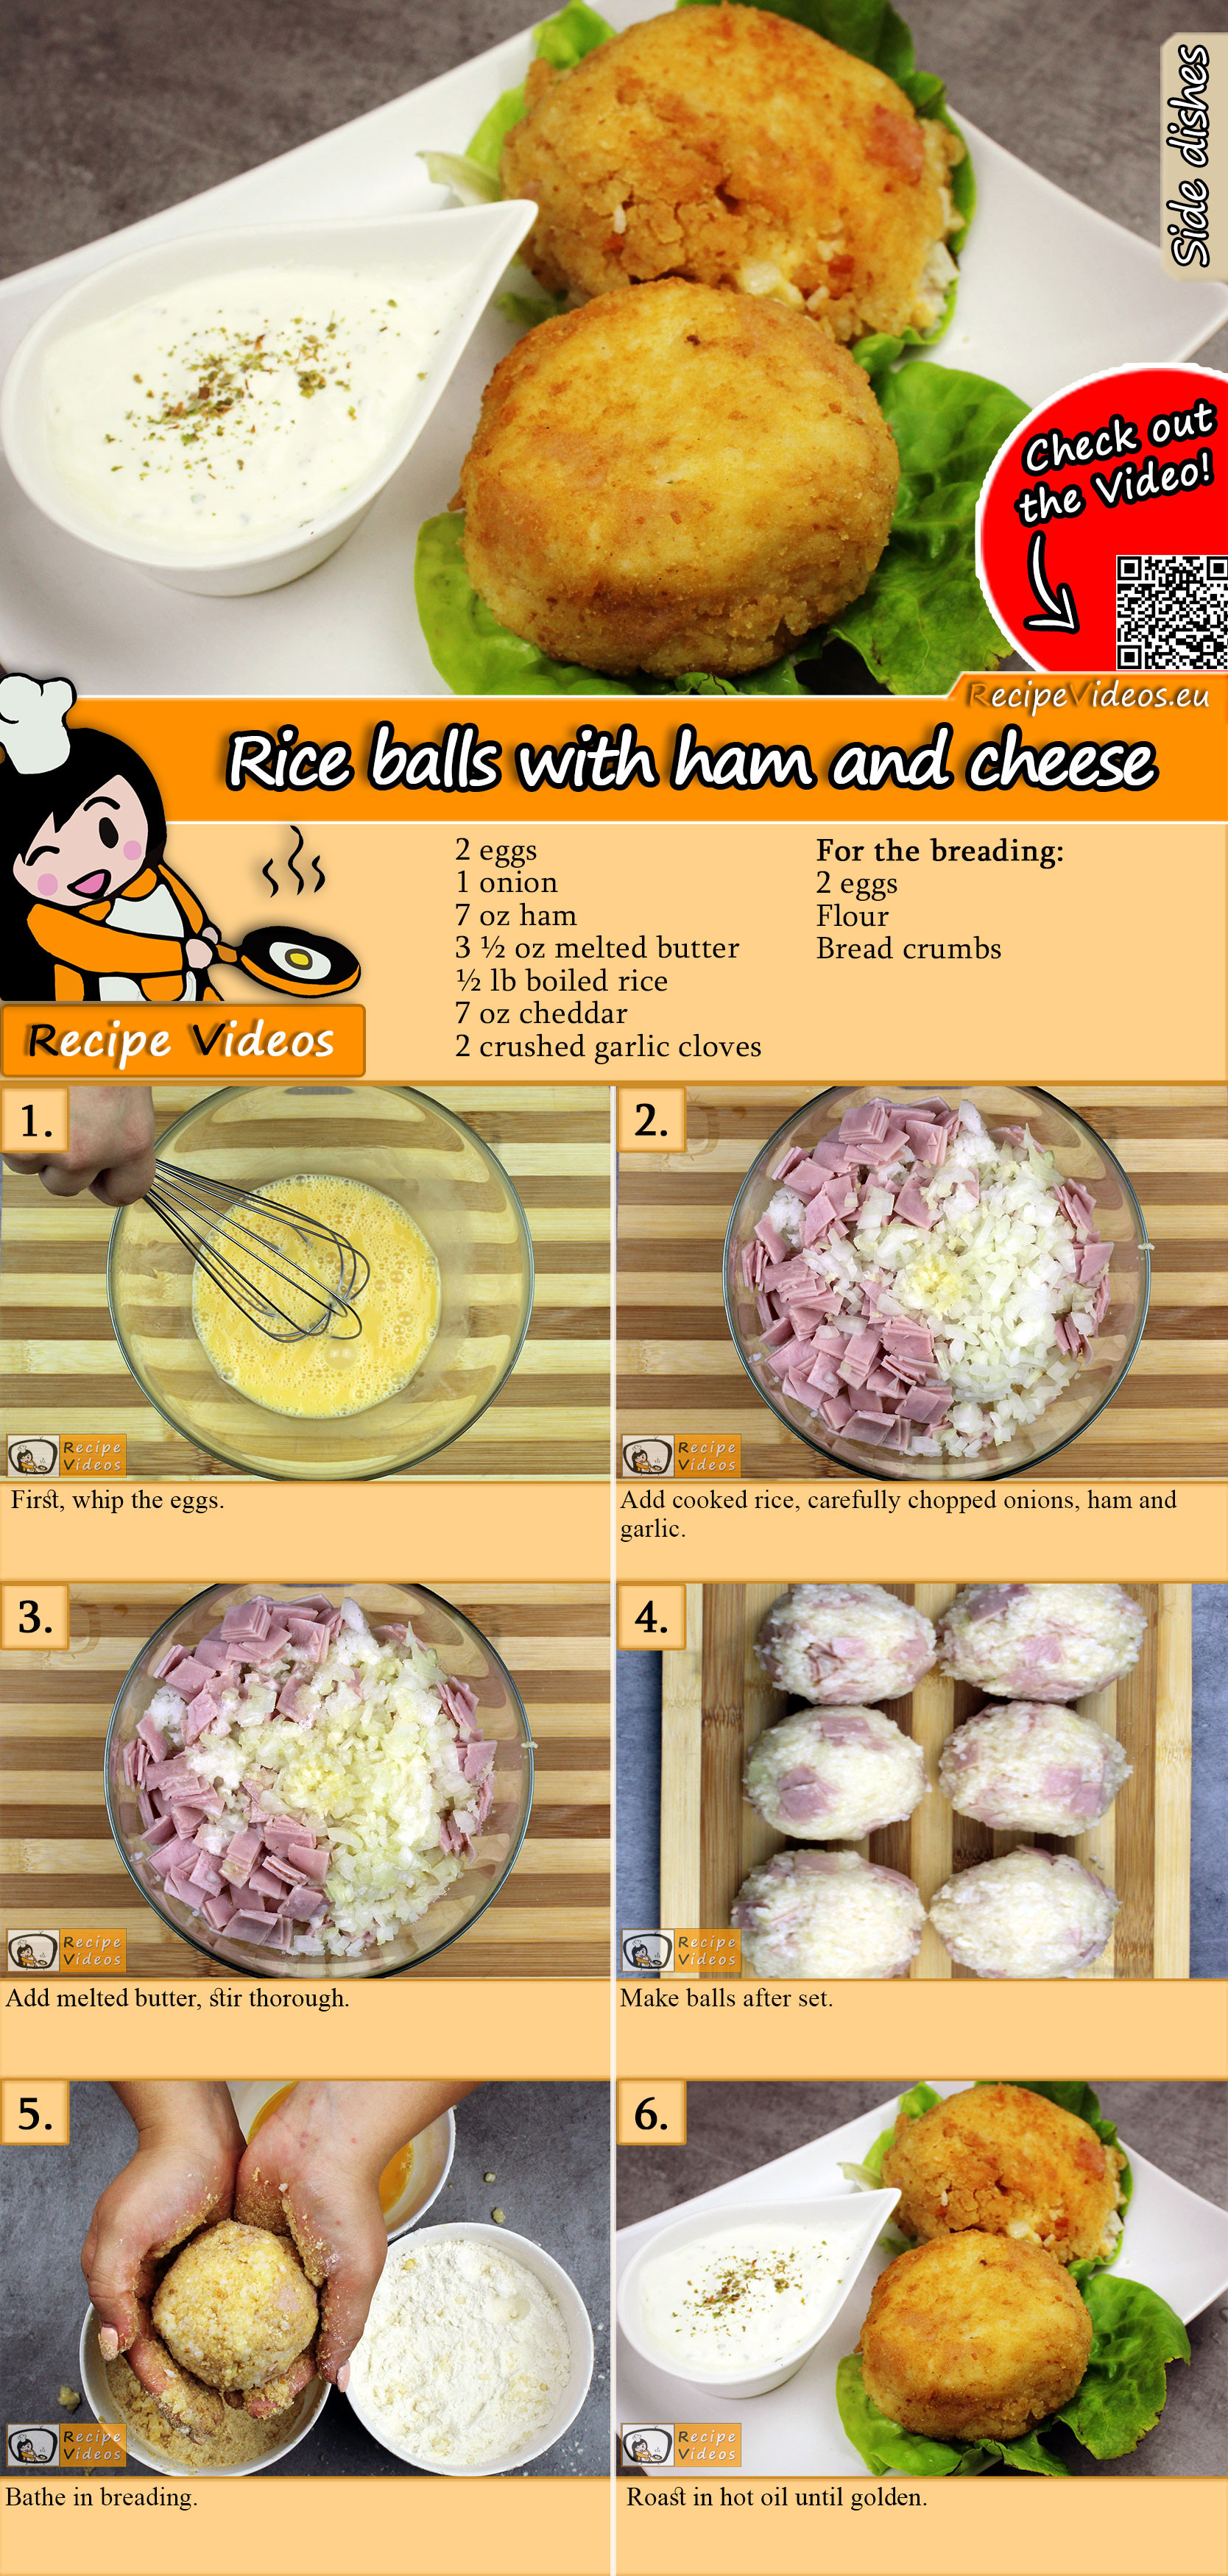 Rice balls with ham and cheese recipe with video